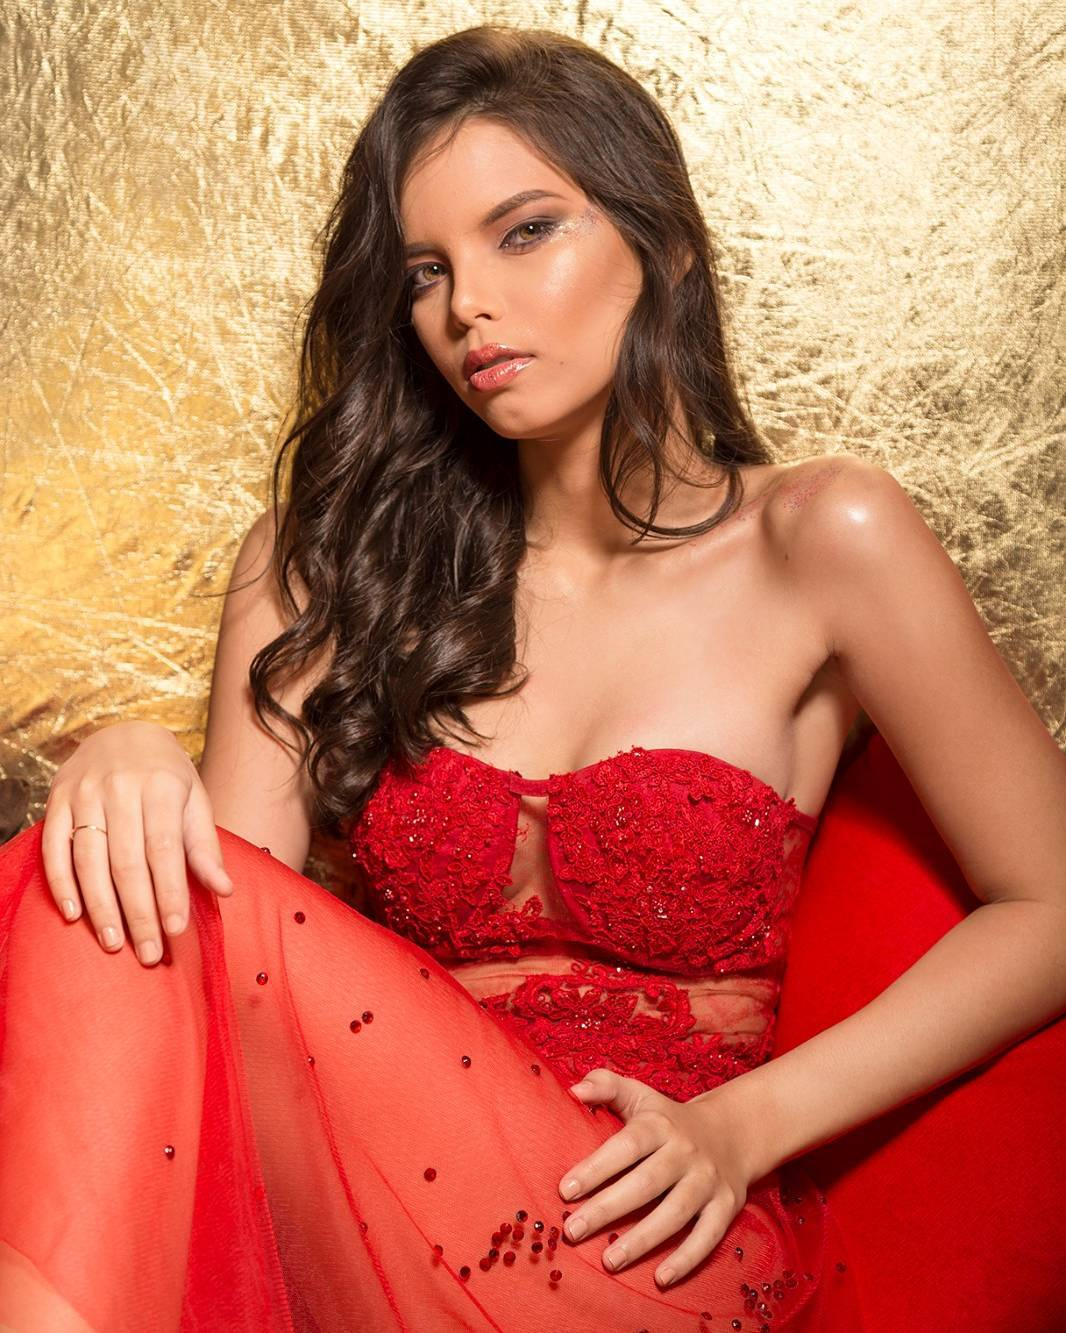 yaiselle tous, miss supranational colombia 2019. - Página 4 15535510